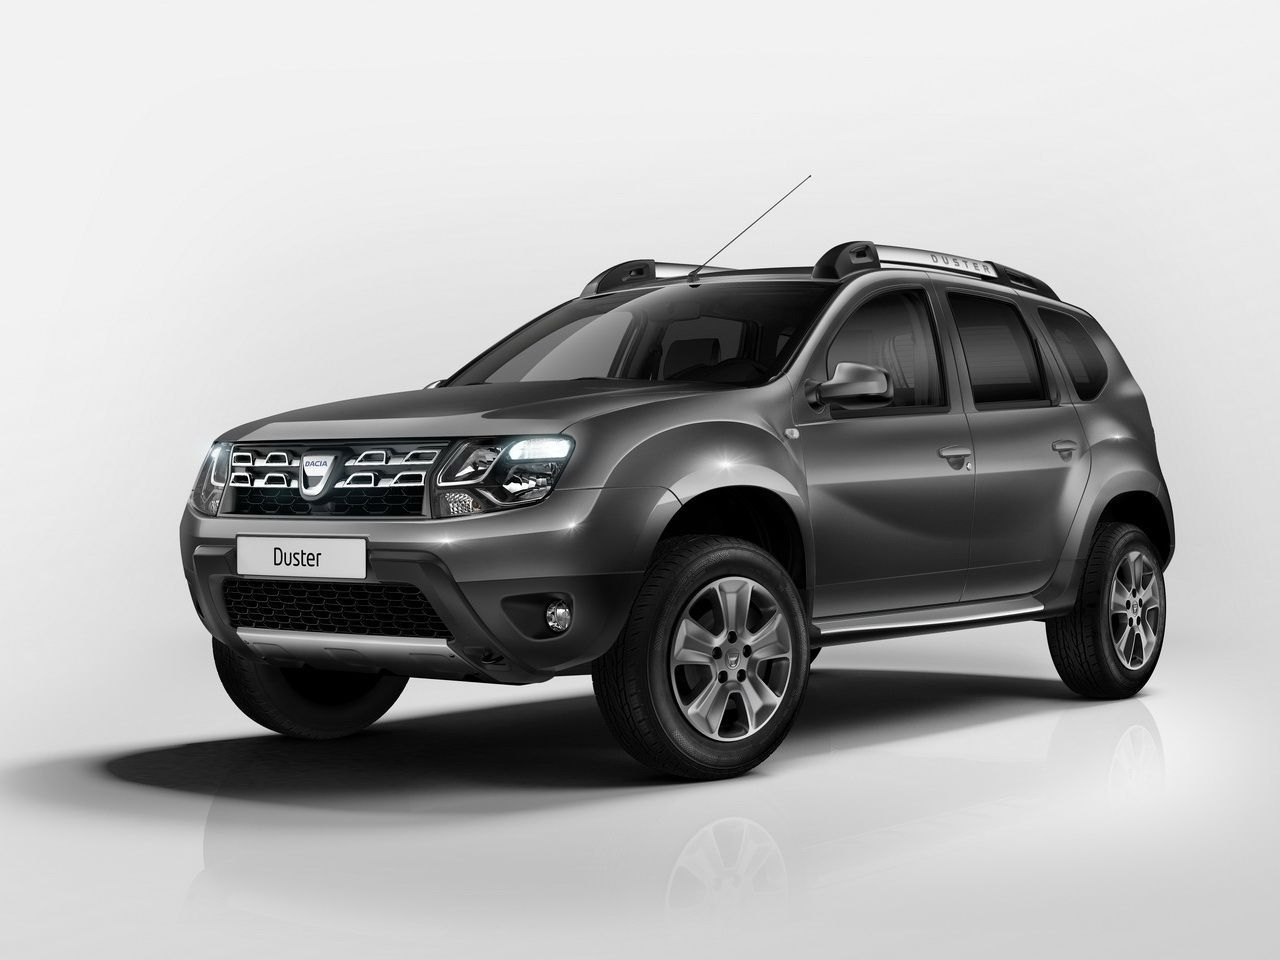 Dacia Duster 2013 : les photos de son restylage